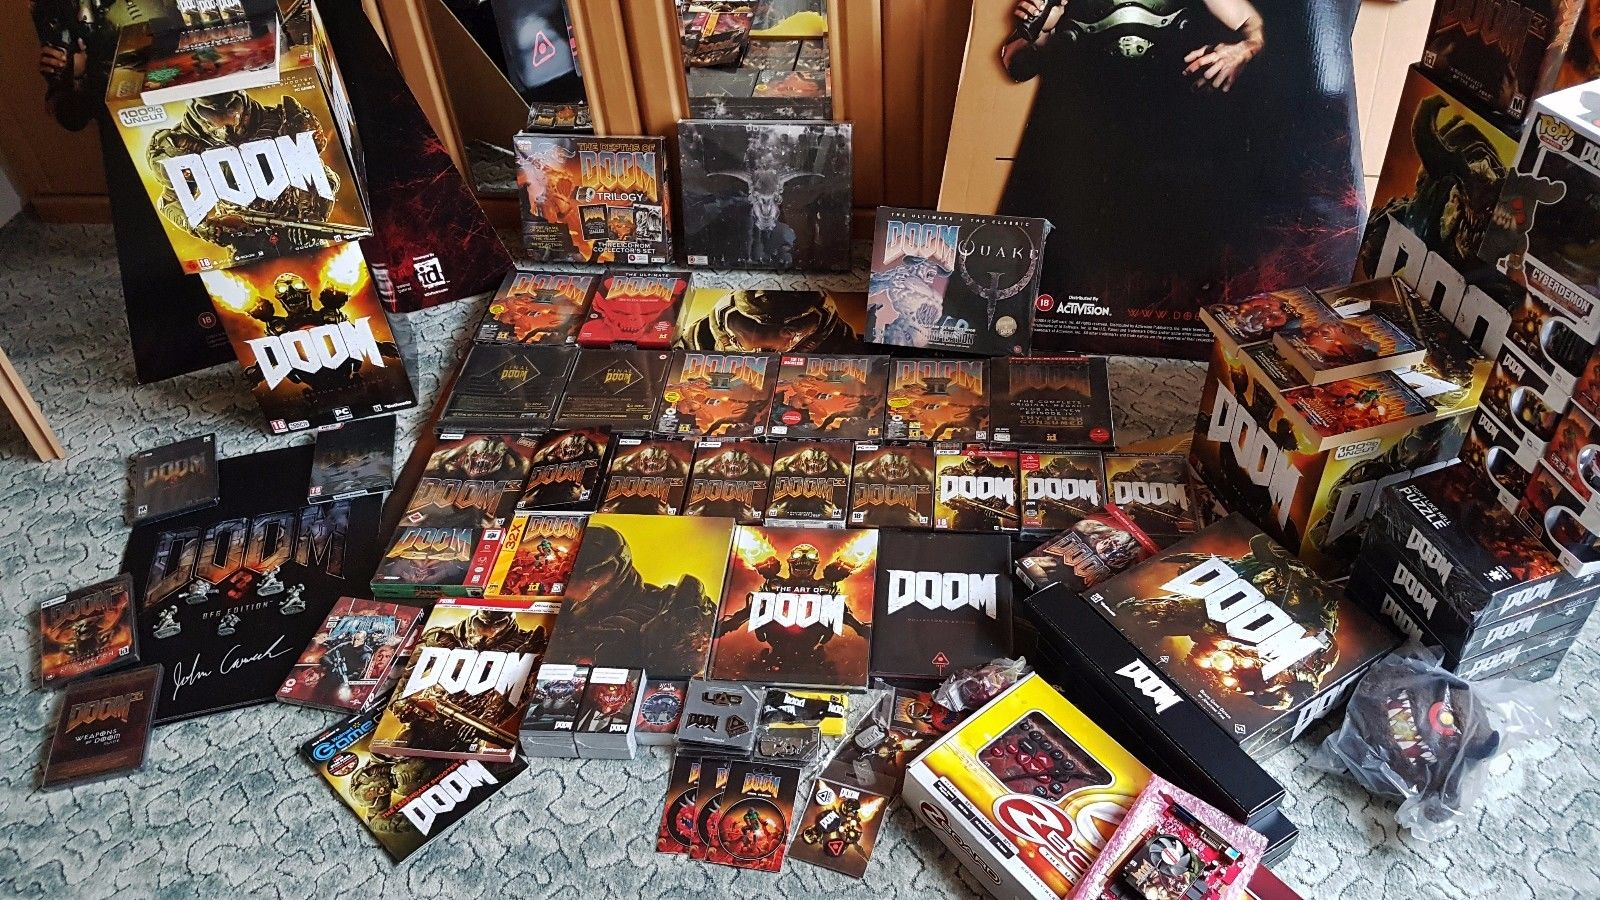 Biggest DOOM Collection in the World Video Game PC Gaming id Software Carmack Romero Hall Petersen McGee Green 7